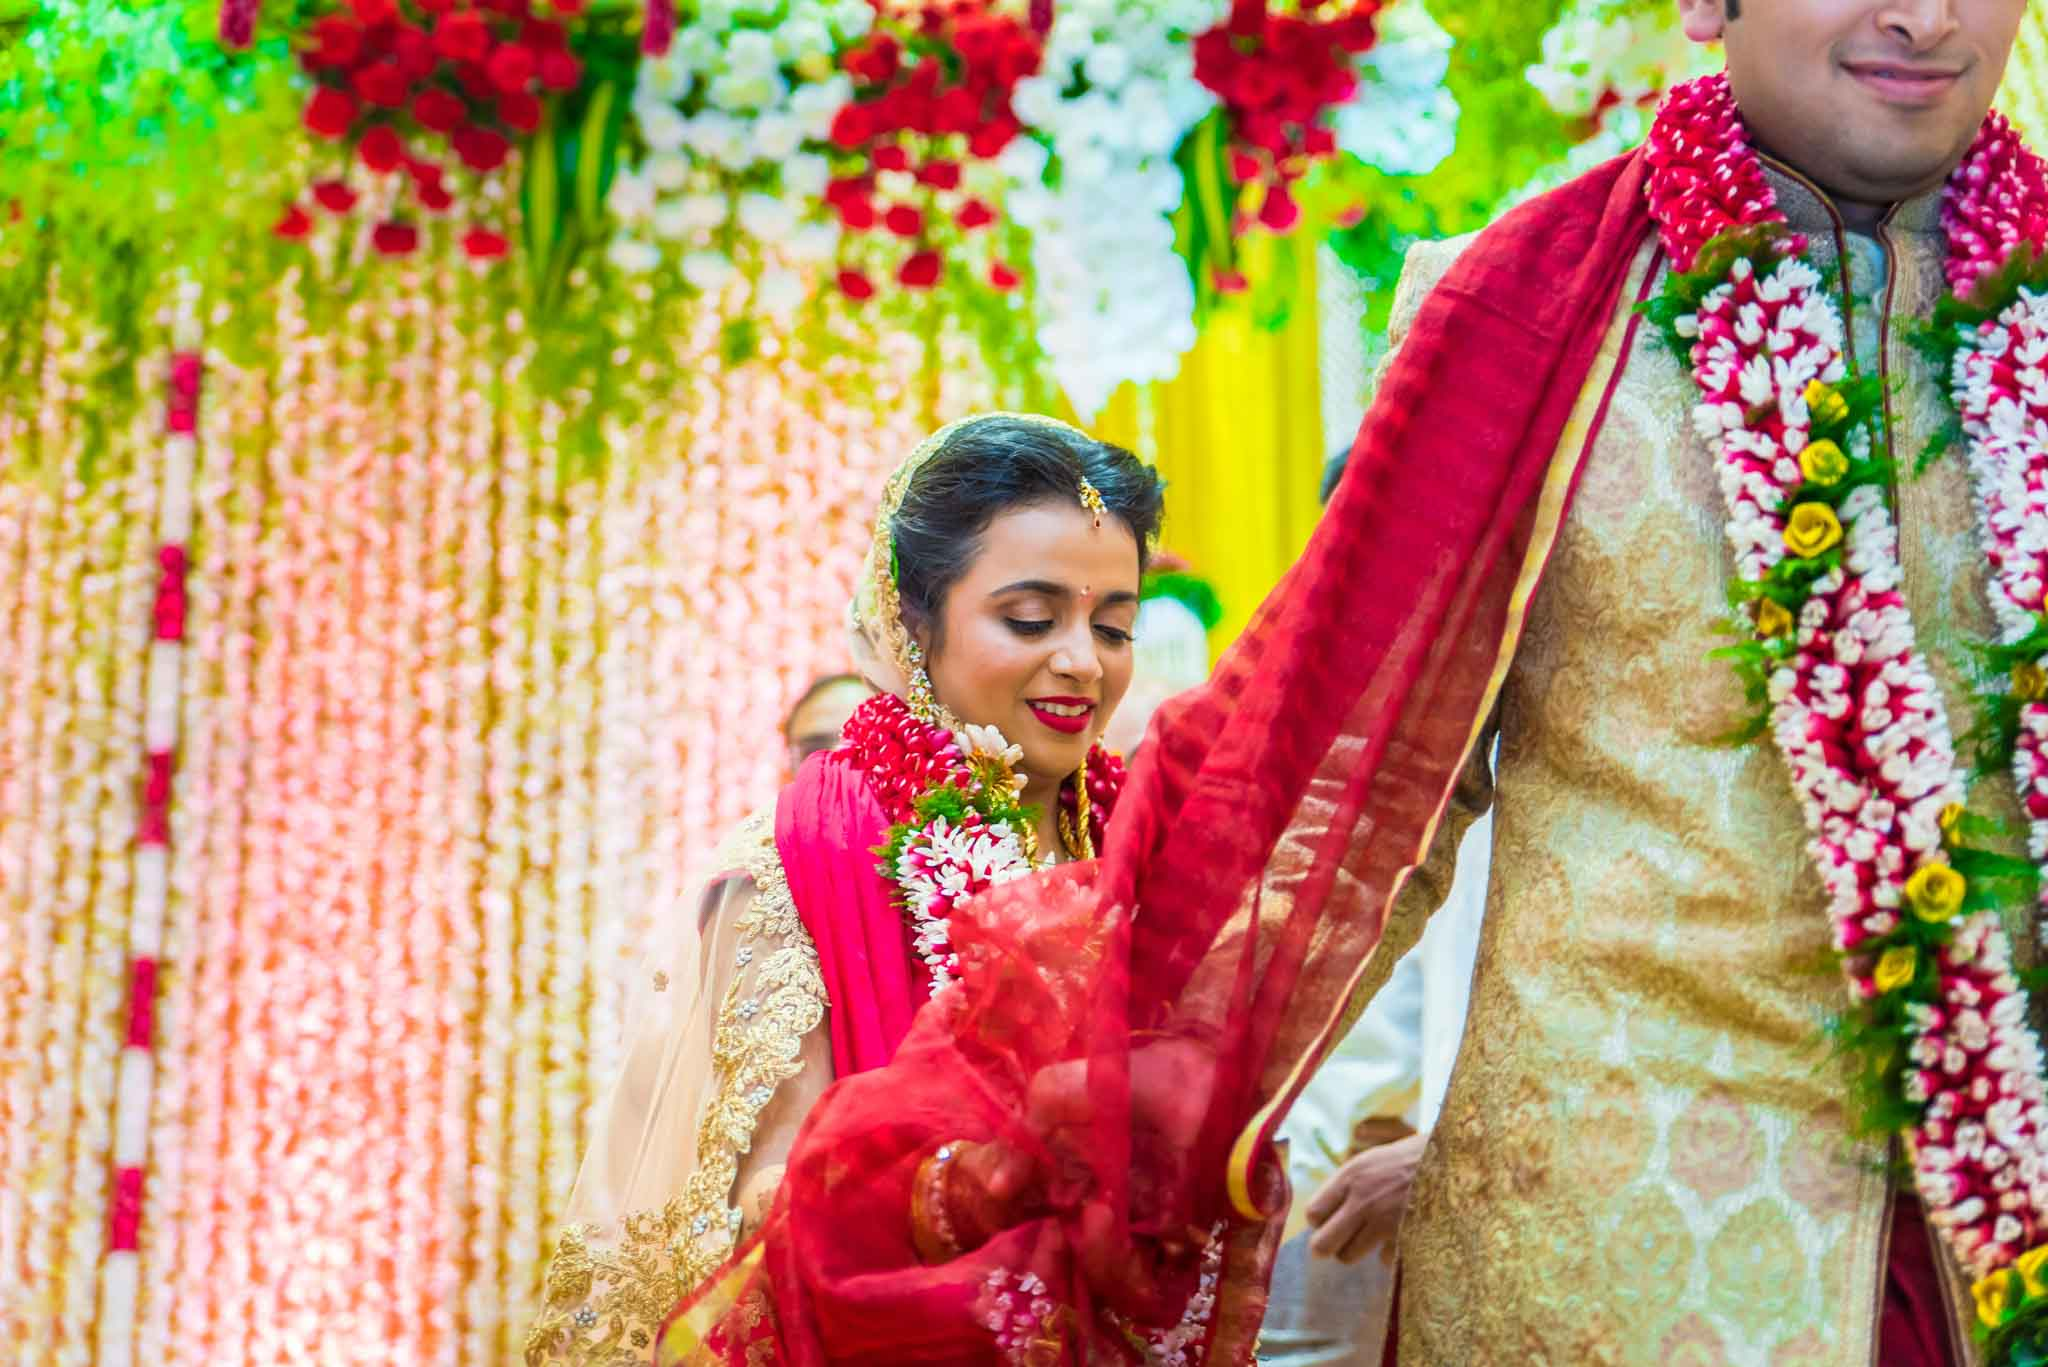 mumbai-candid-photography-wedding-whatknot-kamal-amrohi-studios-43